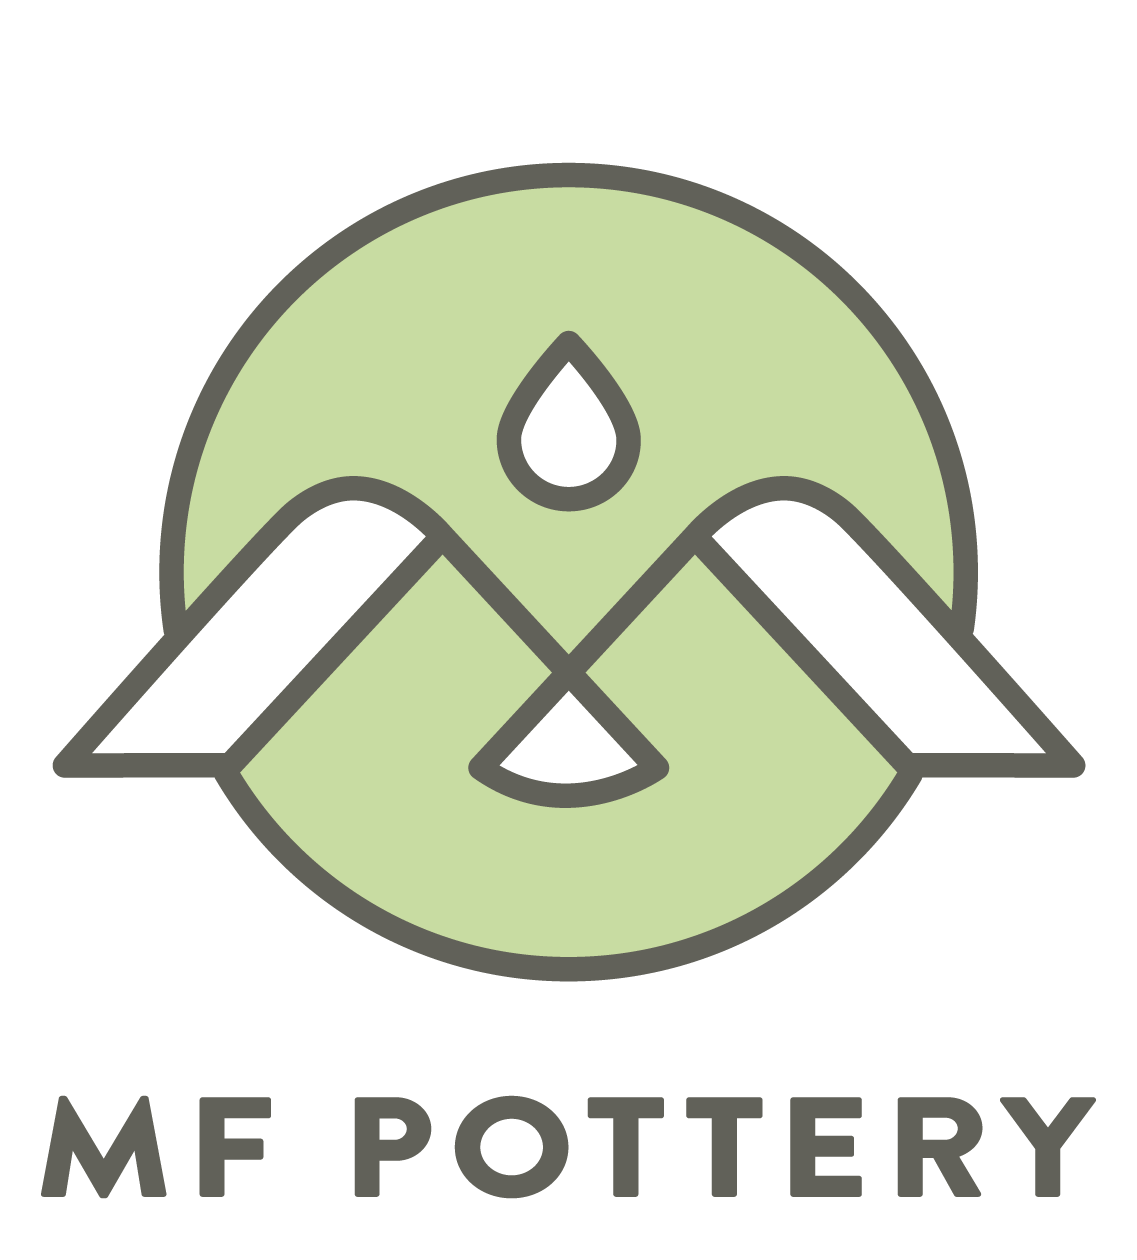 MF Pottery - Modern, Functional Stoneware in Leavenworth, WA